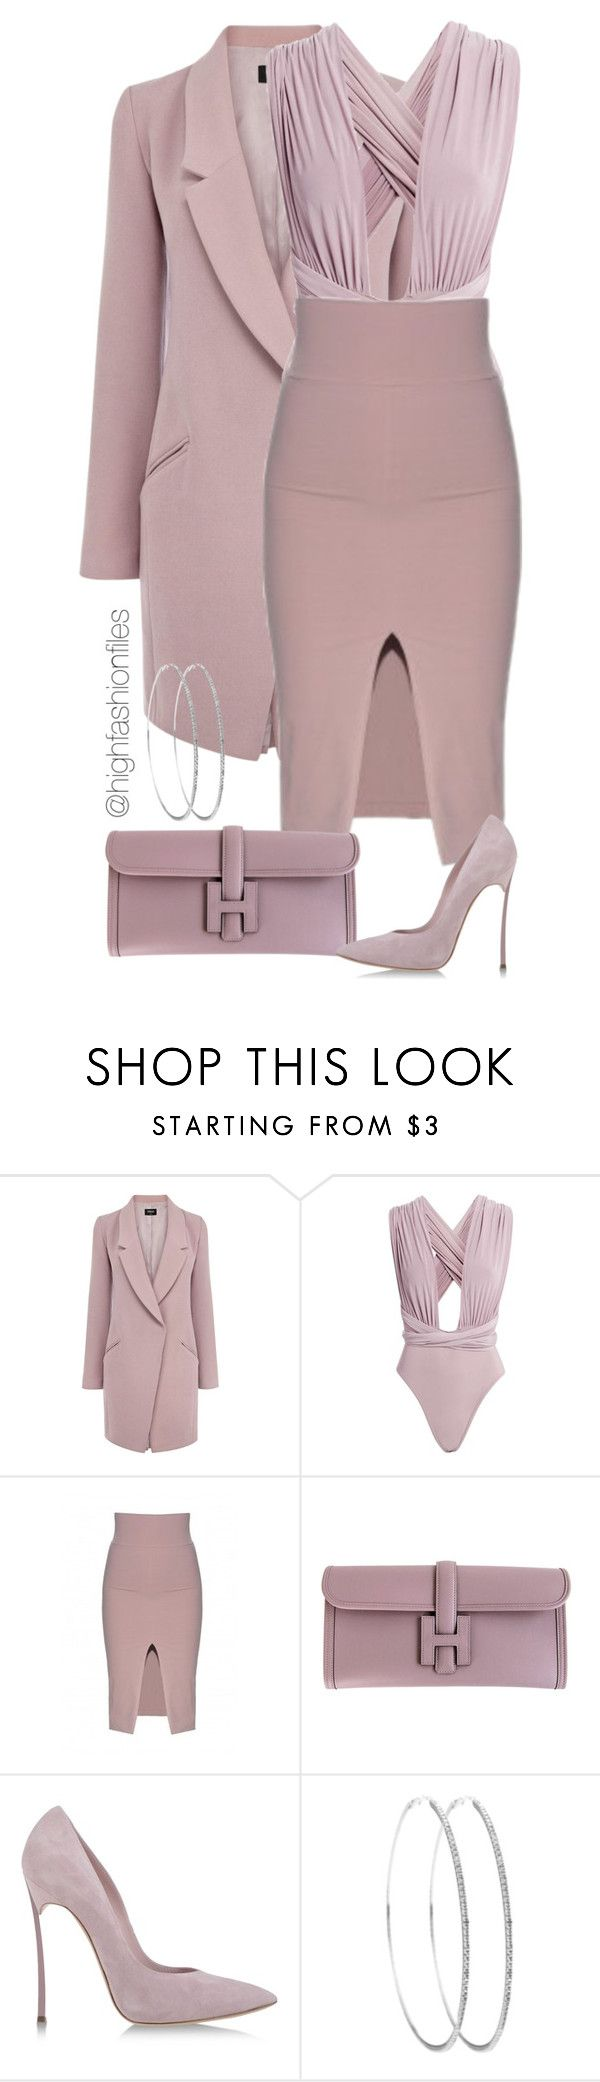 """Suave Muave"" by highfashionfiles ❤ liked on Polyvore featuring Oasis, Hermès and Casadei"